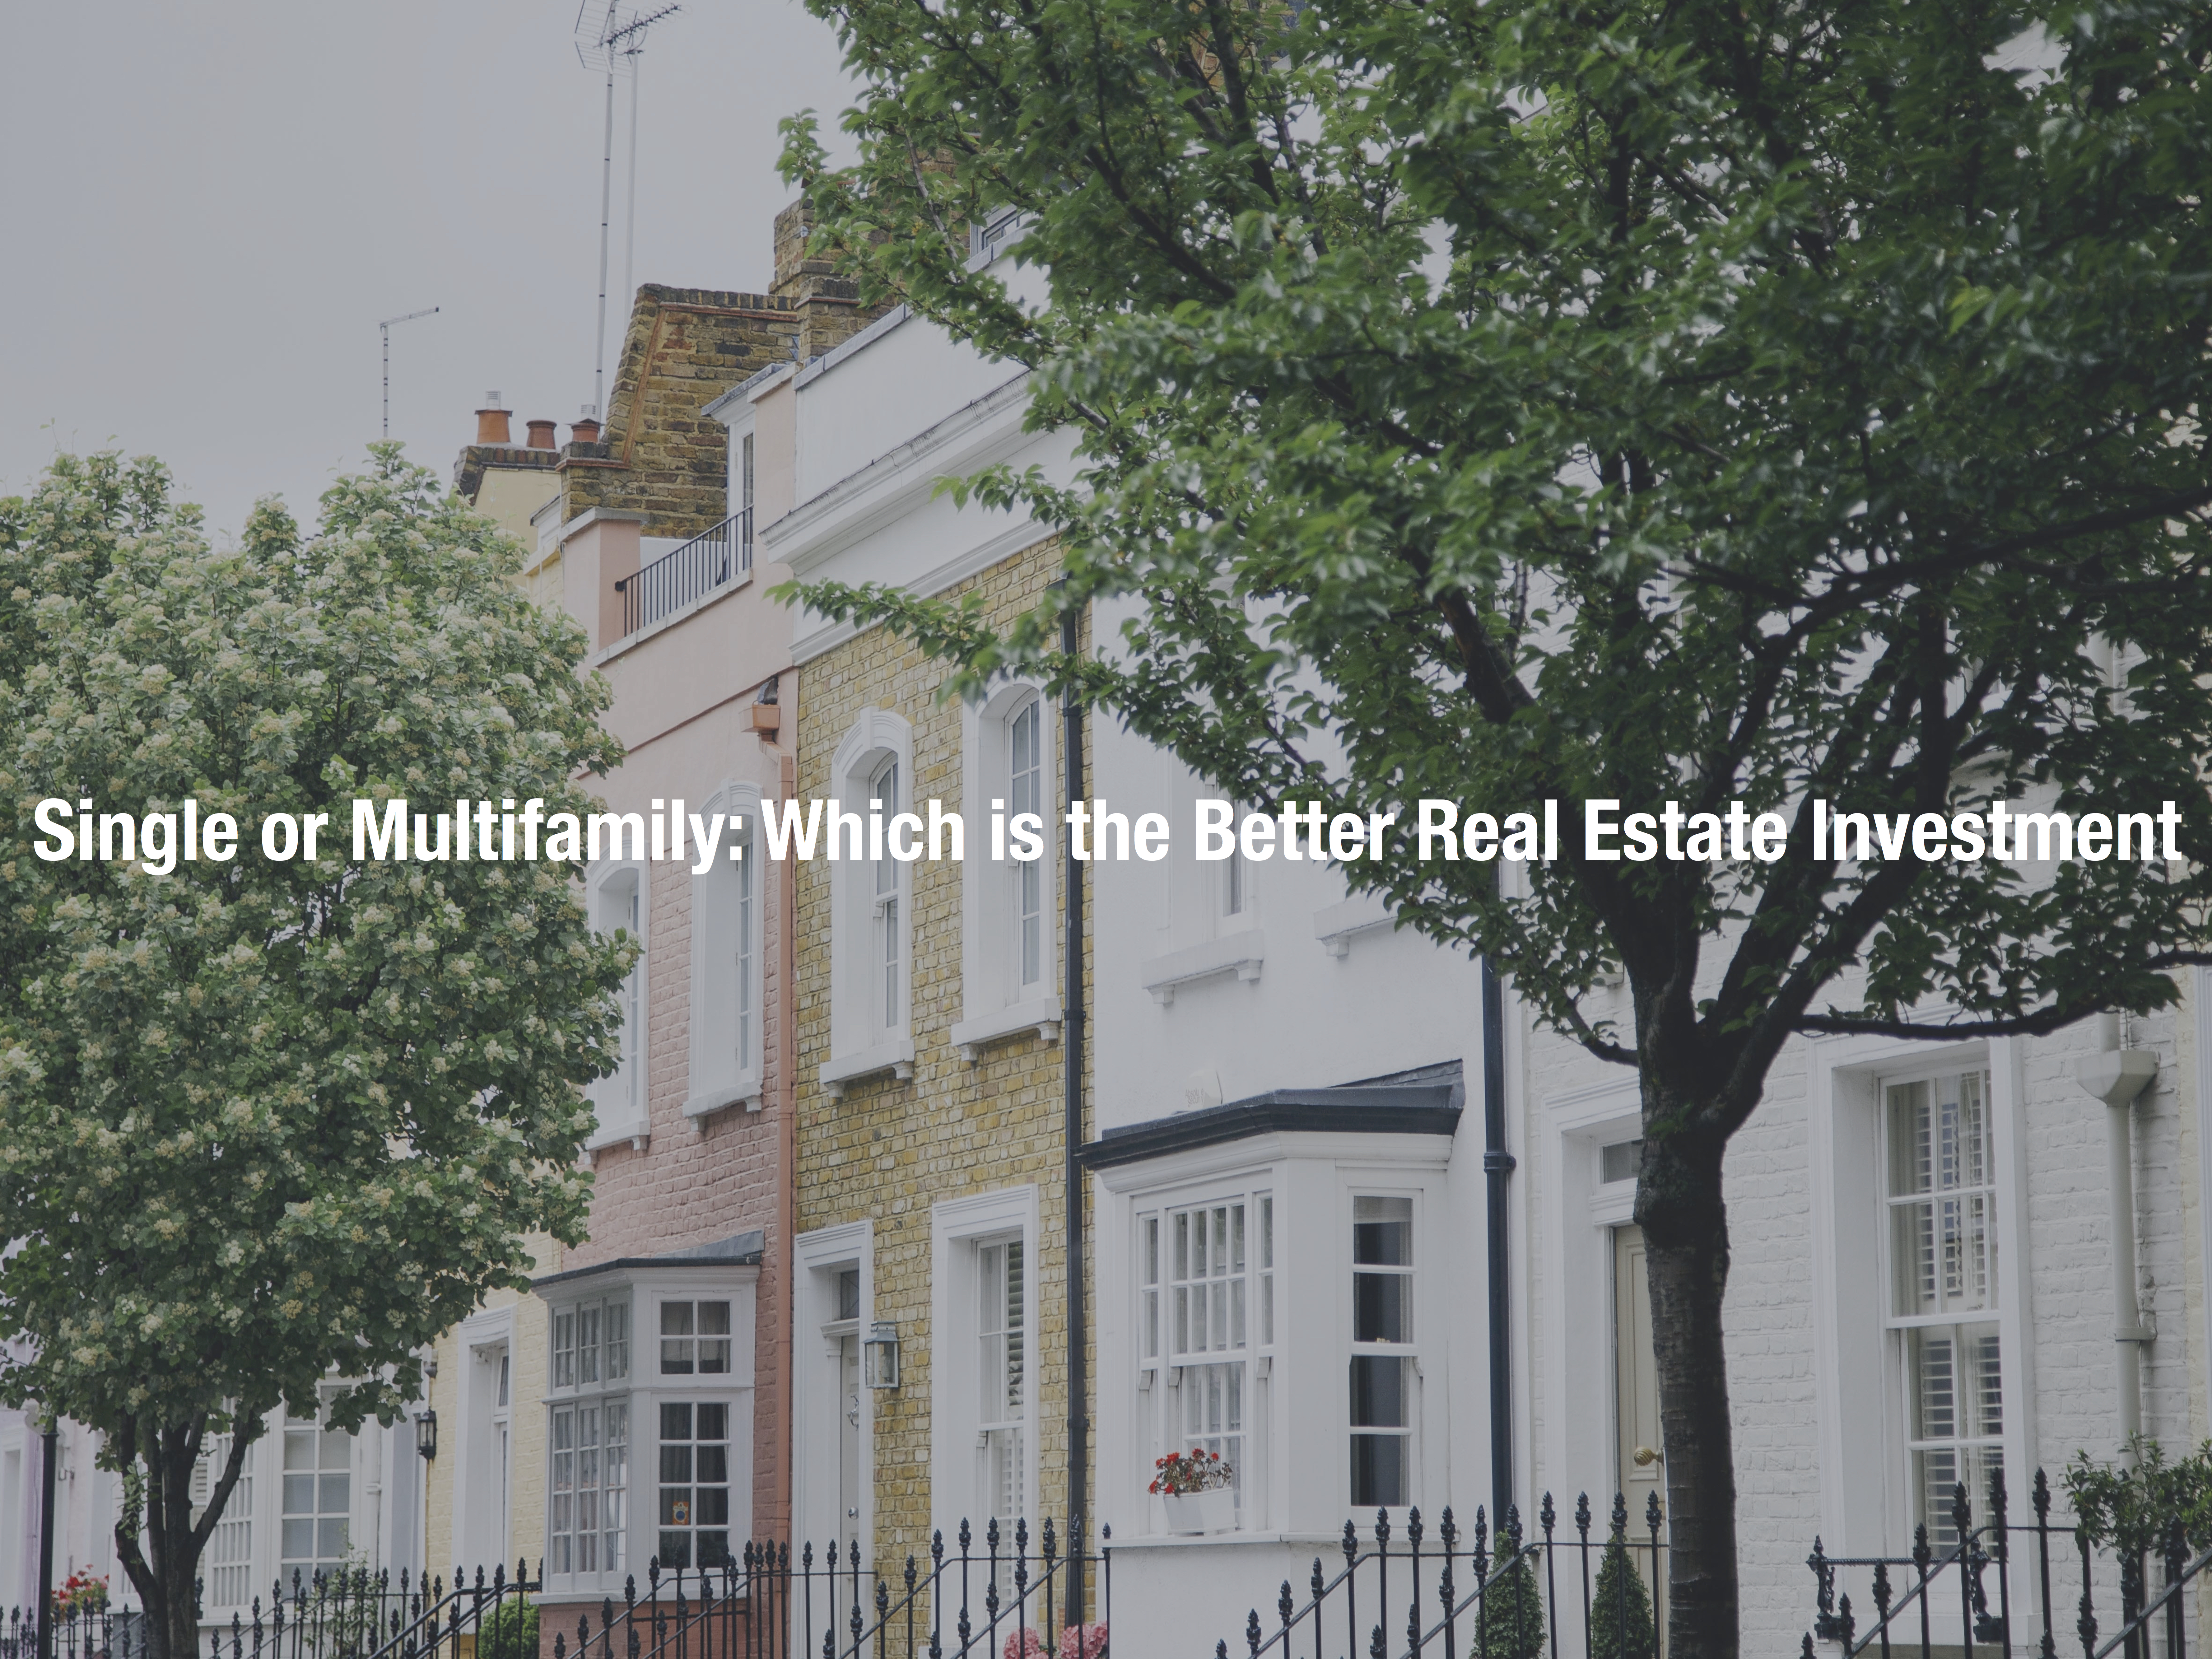 Single or Multifamily real estate investing